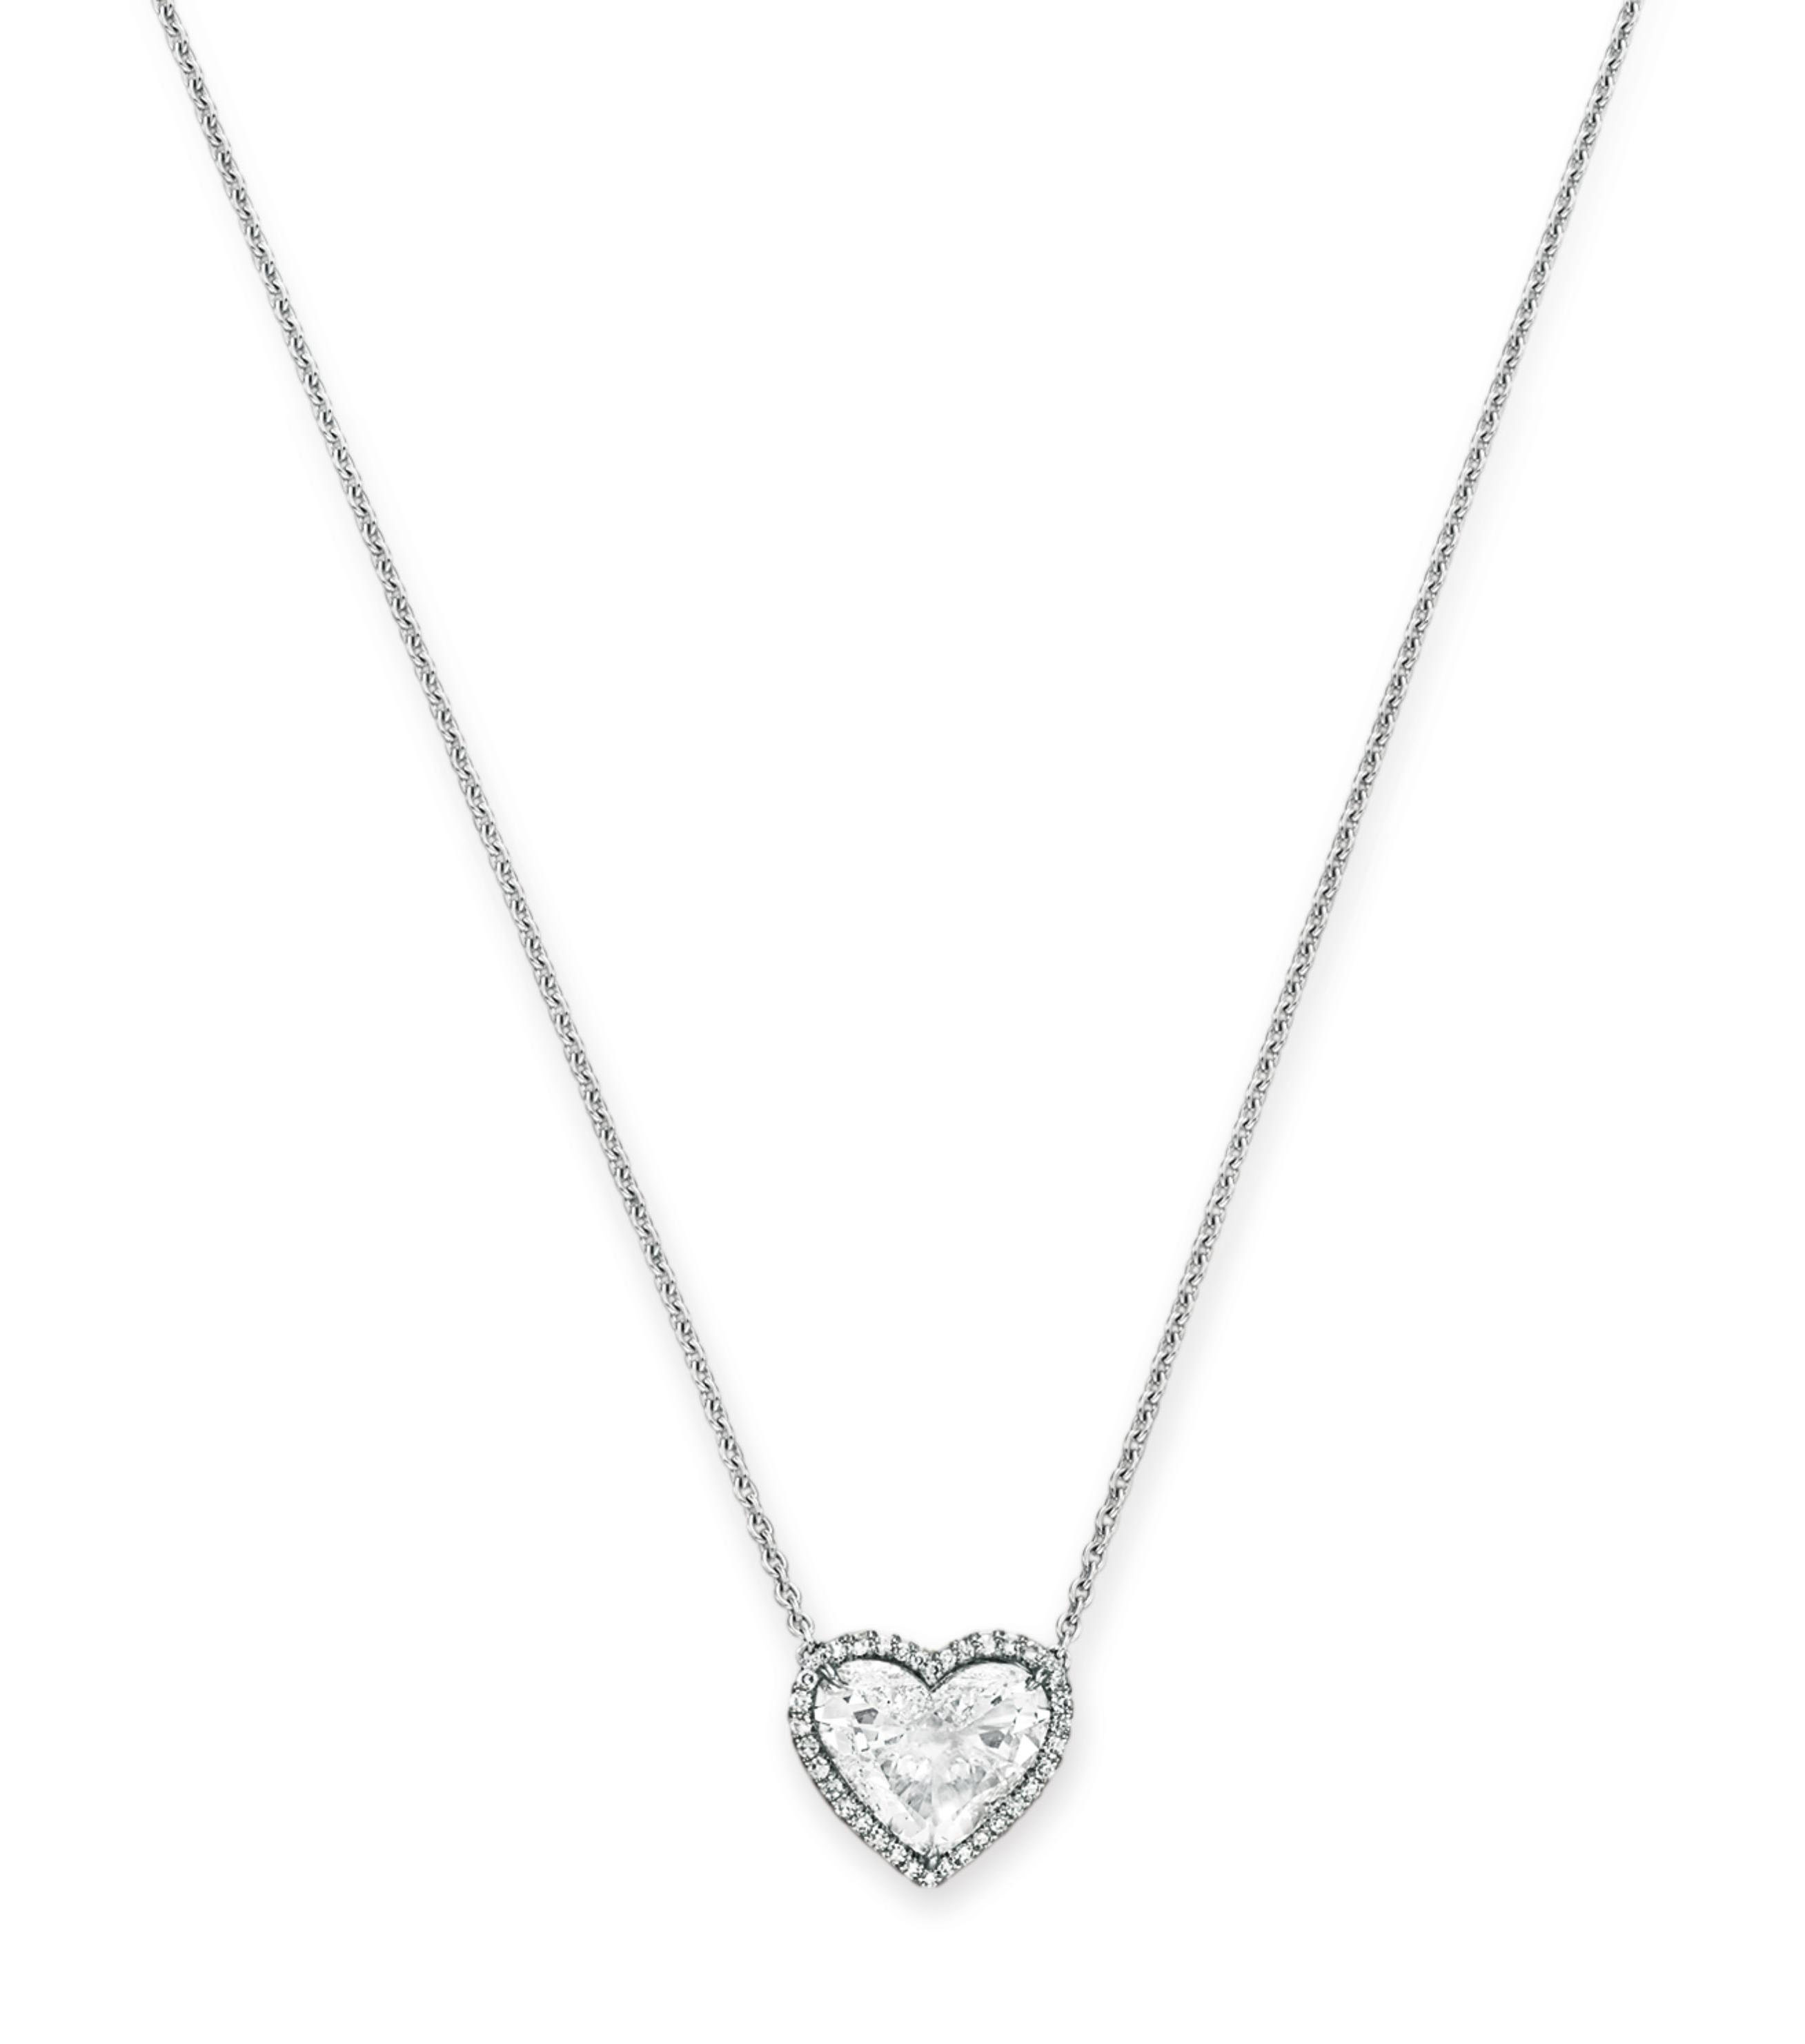 A HEART-SHAPED DIAMOND PENDANT NECKLACE